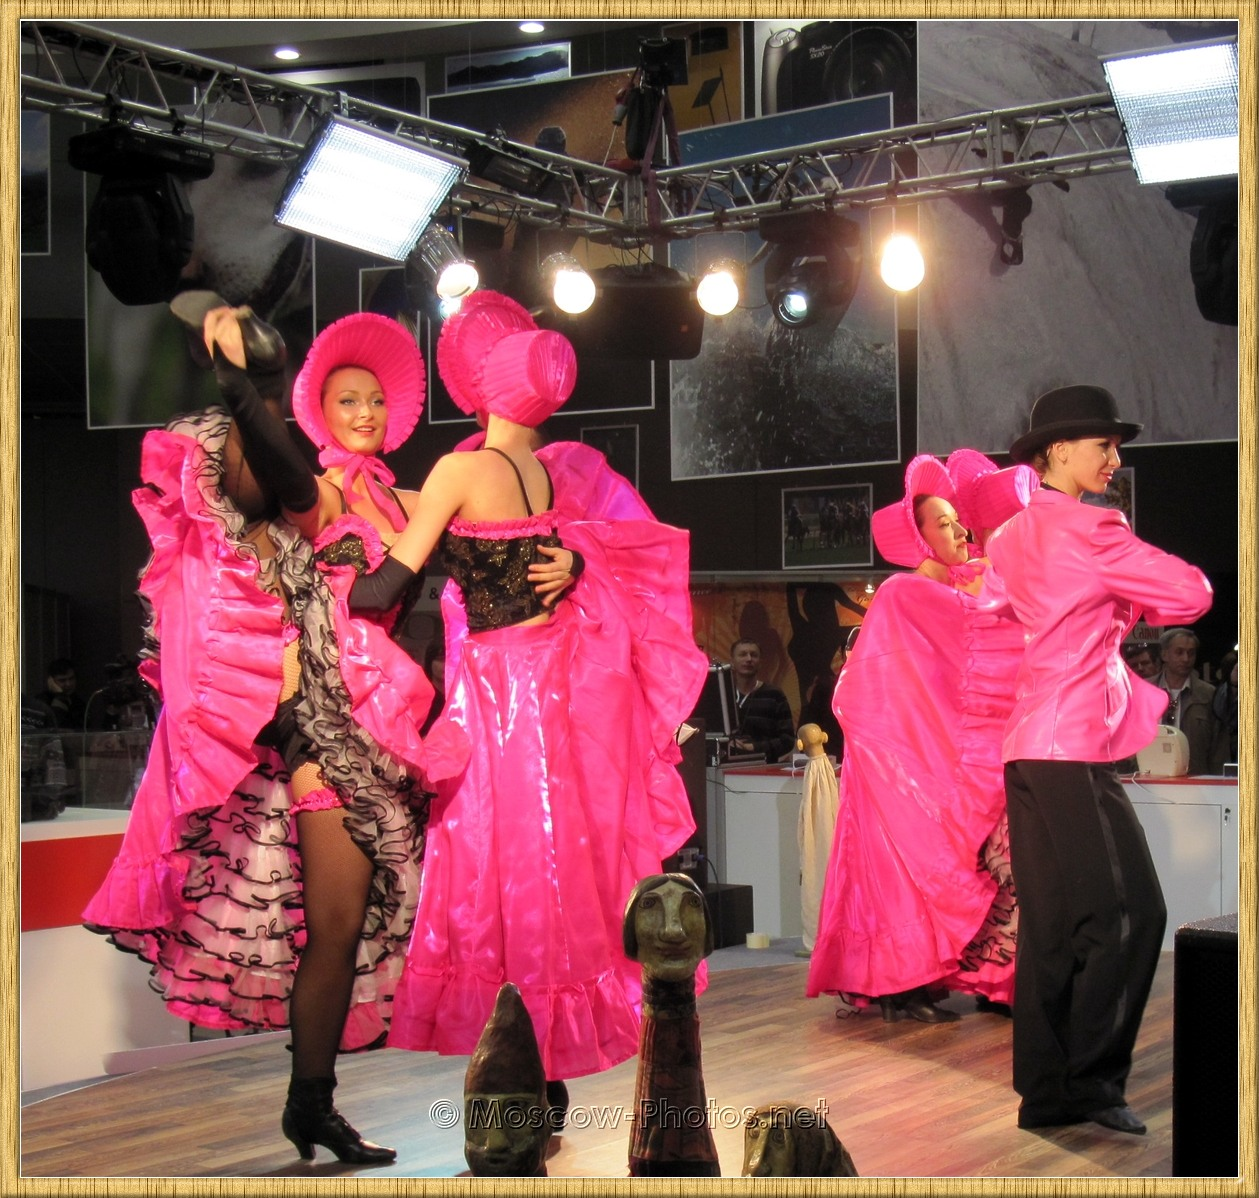 Girls Dancing In Pink Suits at Photoforum - 2010